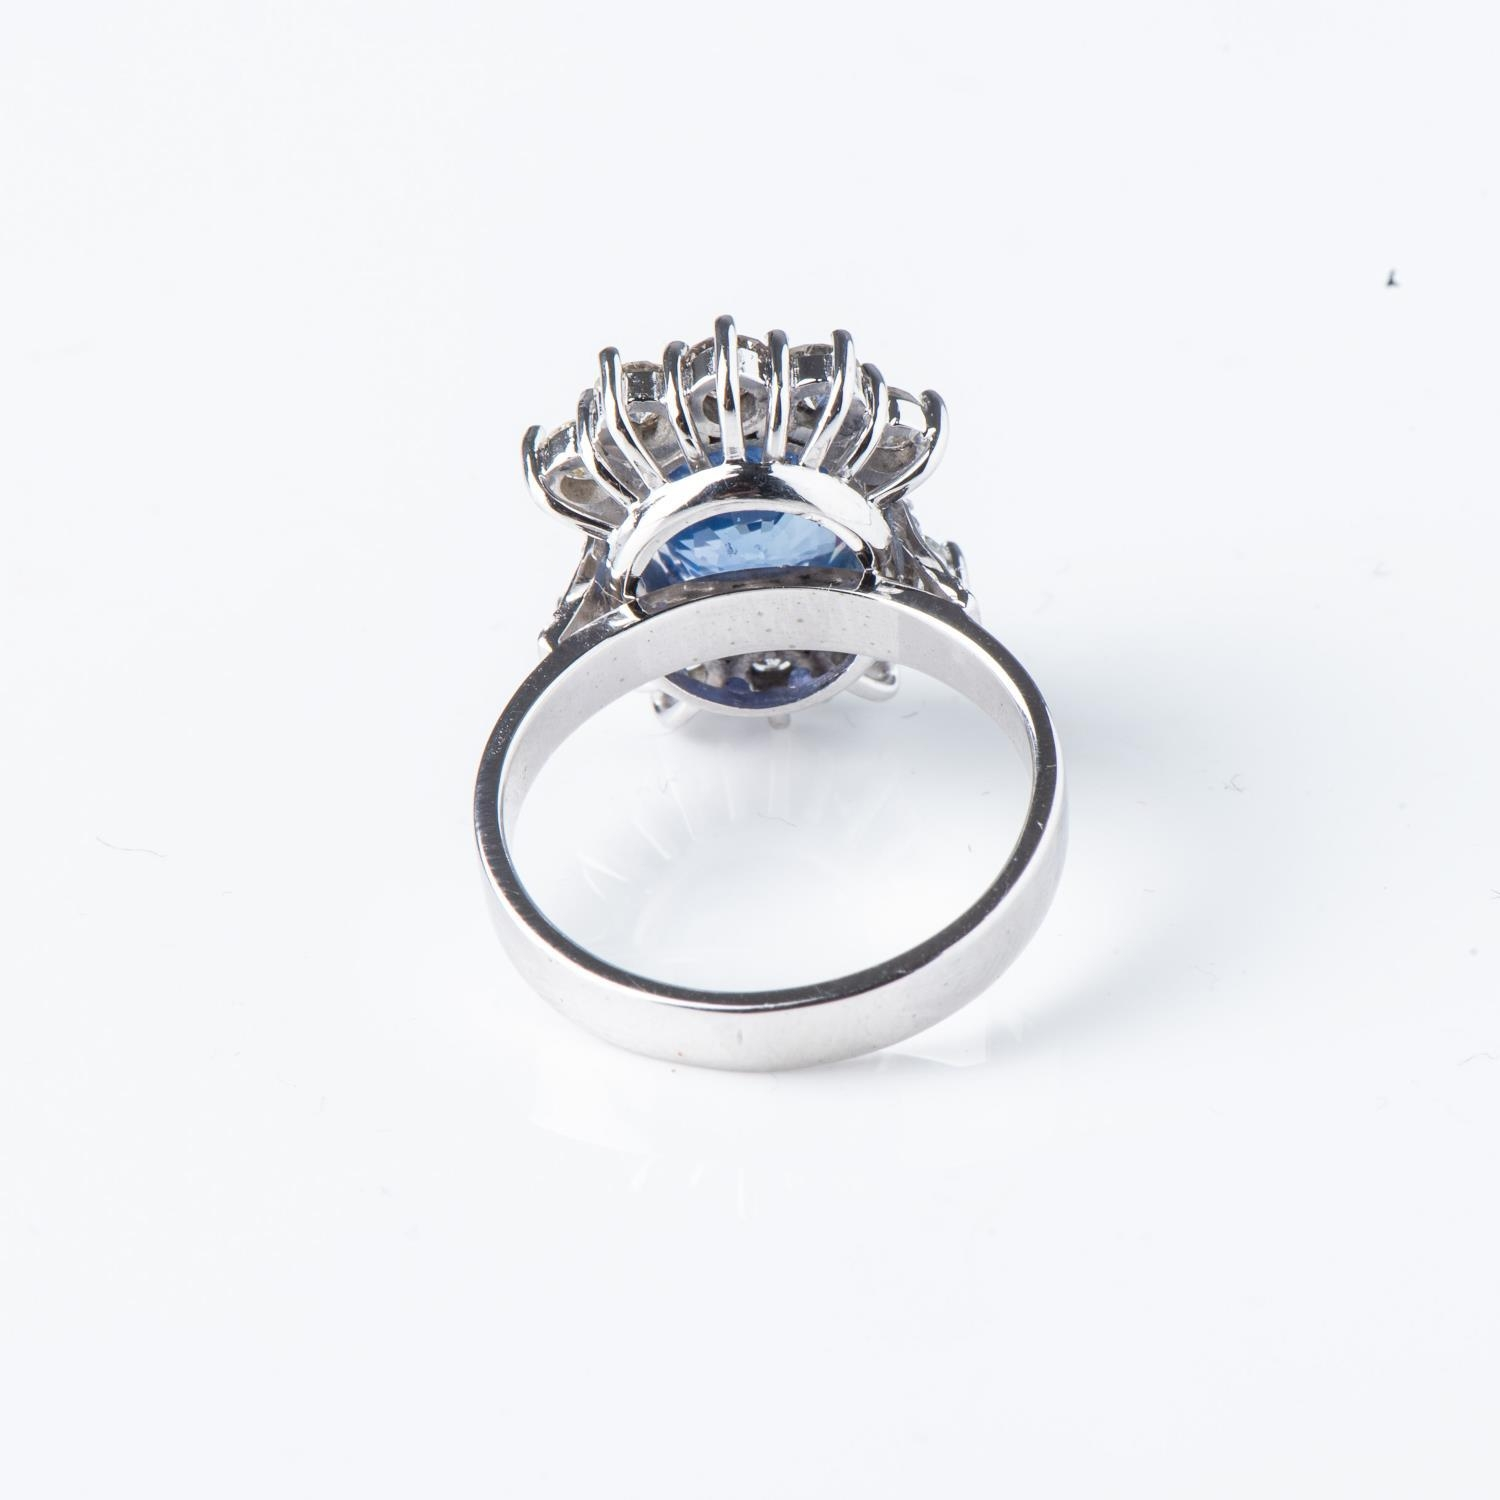 A SAPPHIRE AND DIAMOND RING - Image 3 of 3